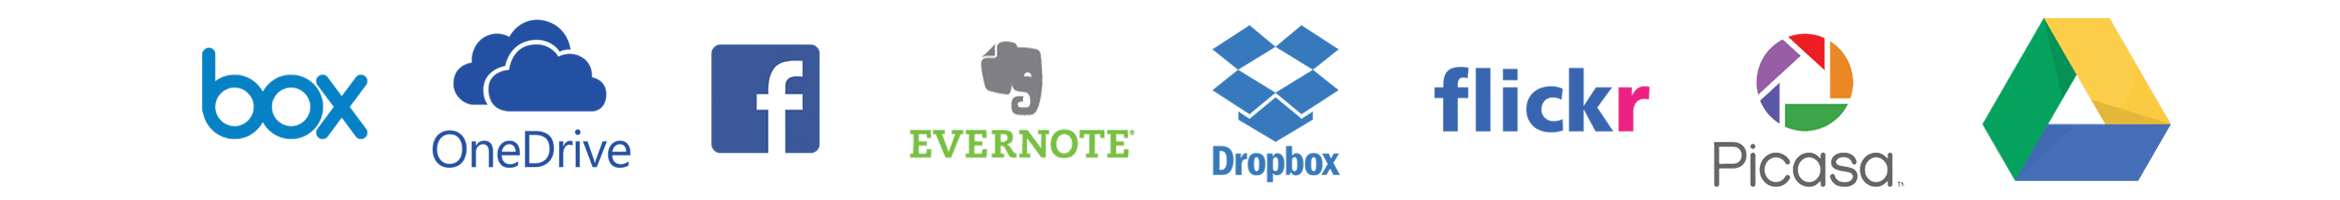 Brother web connect apps - Box, OneDrive, Facebook, Evernote, Dropbox, Flickr, Picasa and Google Drive logos